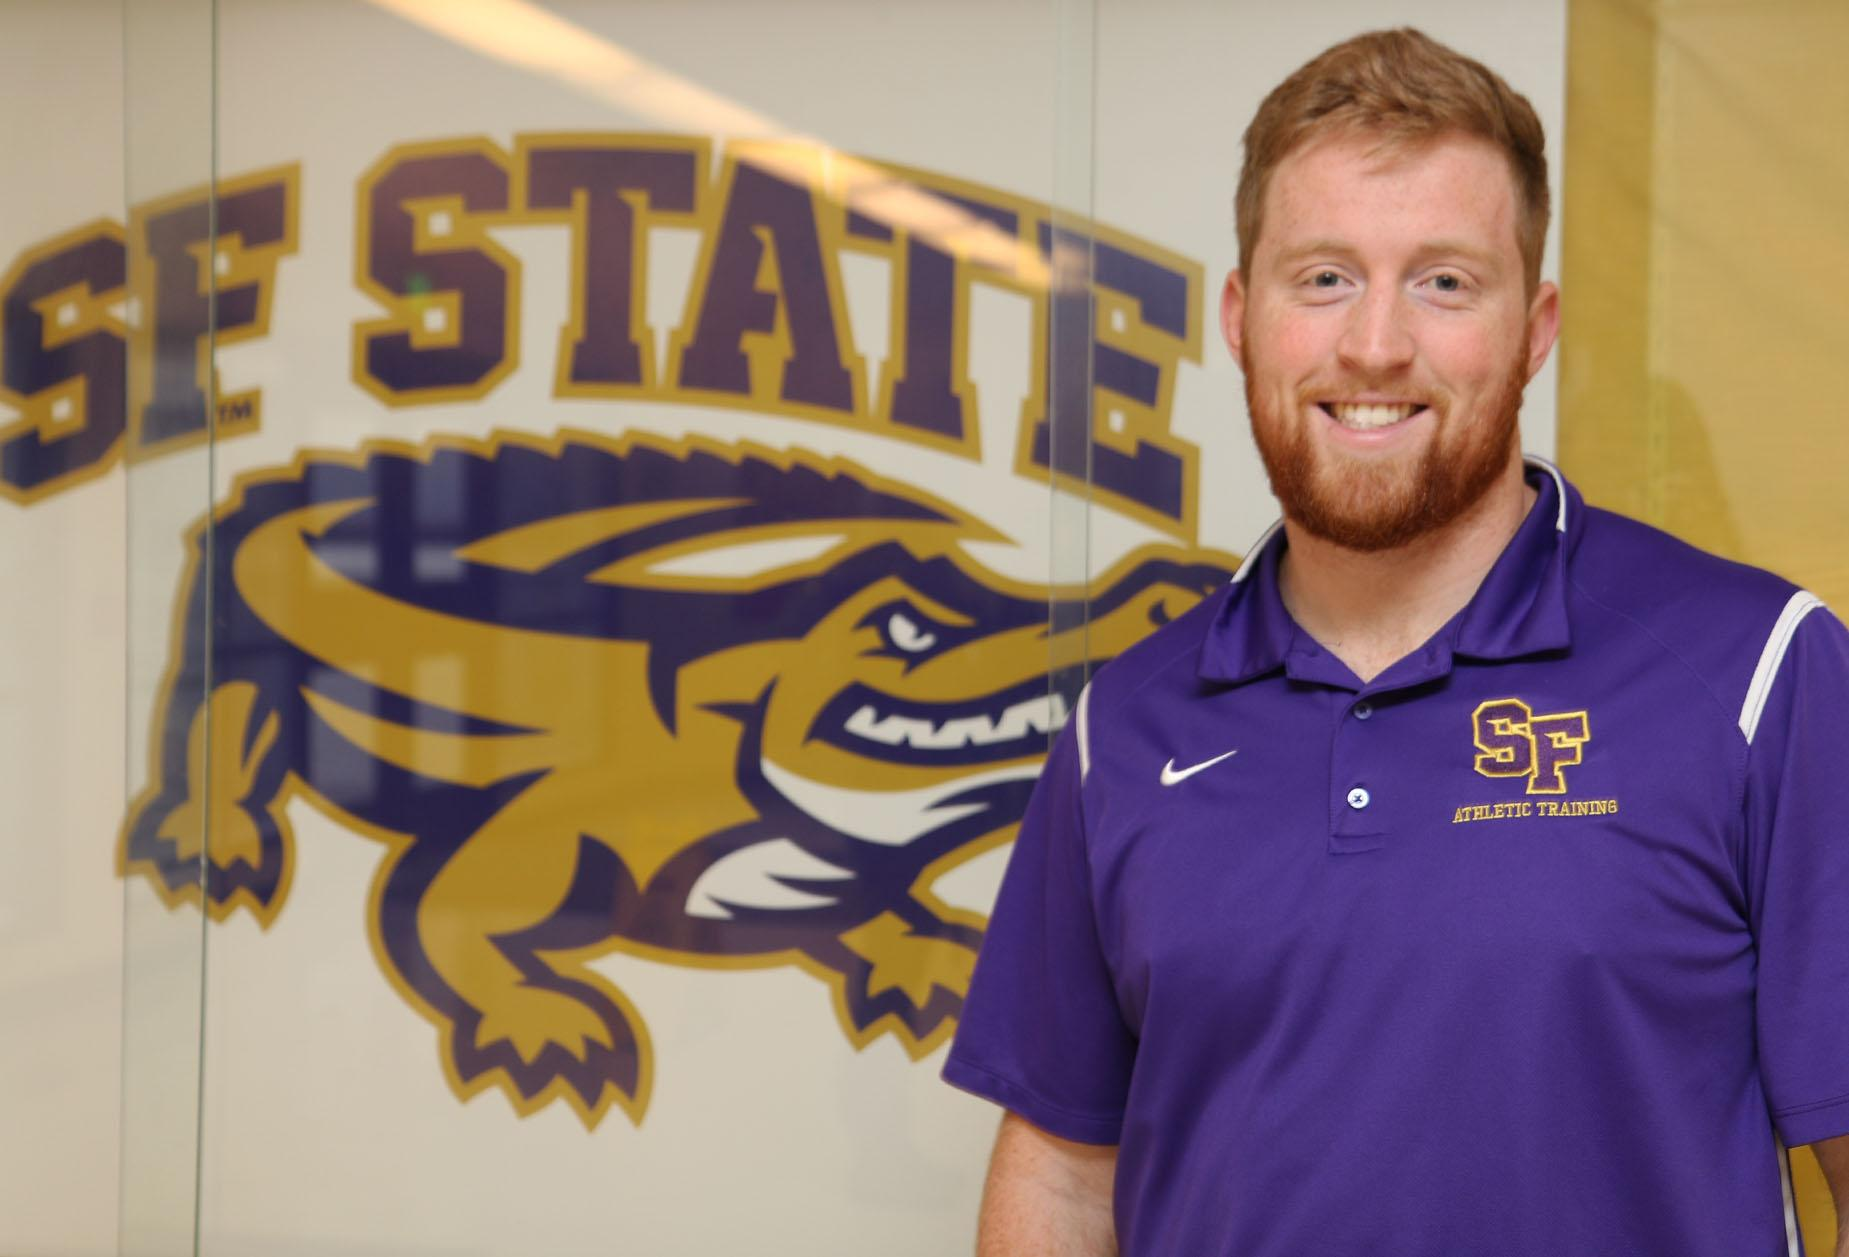 San Francisco State welcomes Phil Littlejohn to the campus as an athletic trainer on February 7, 2016.